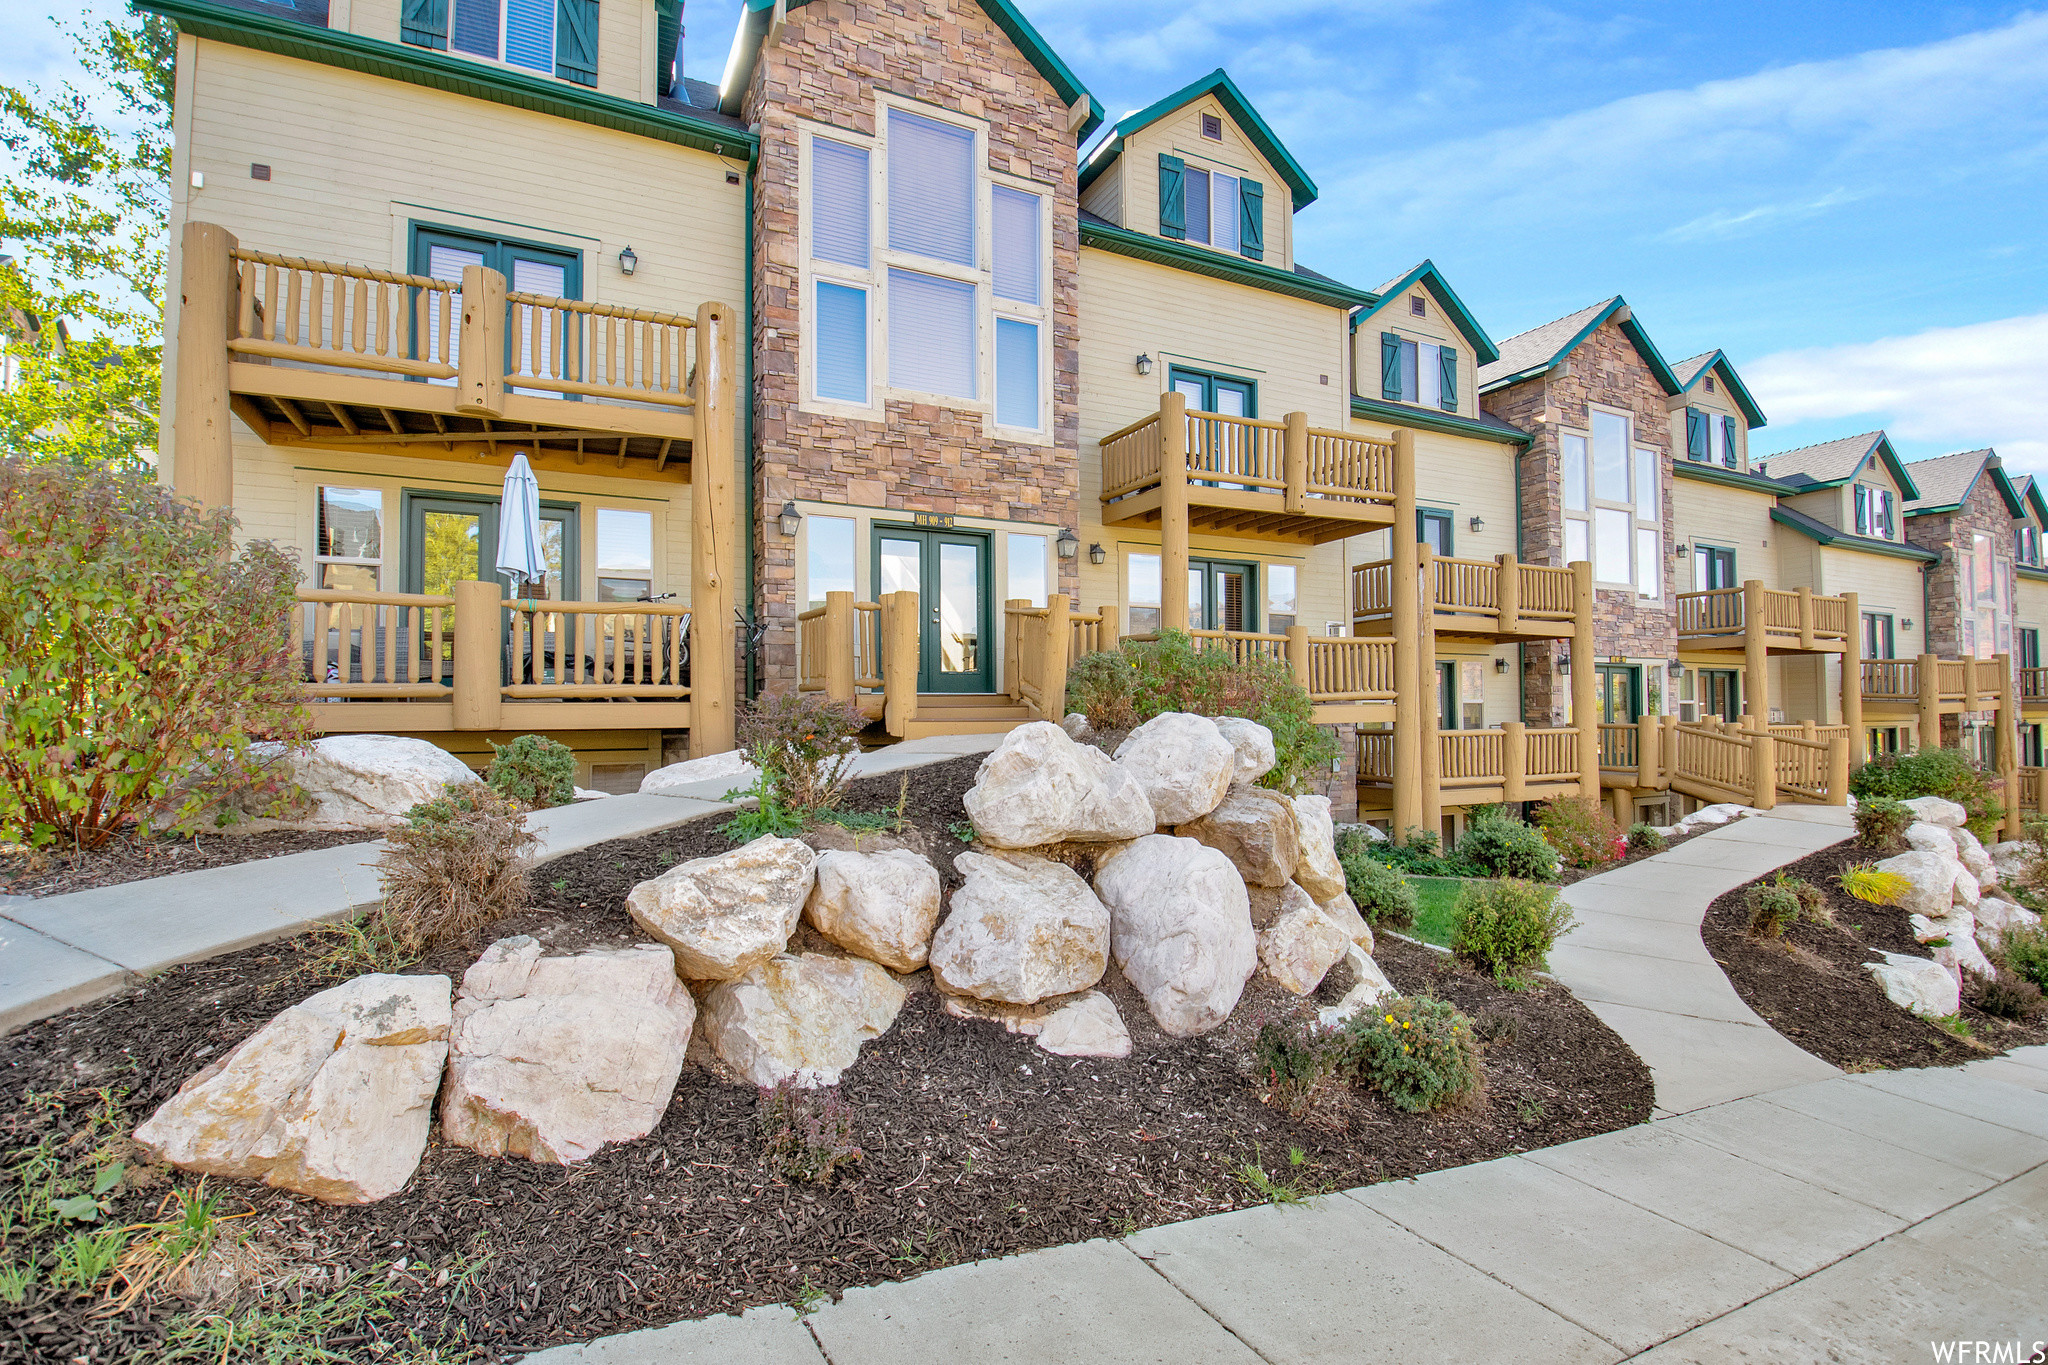 2-Story Condo In Wolf Creek